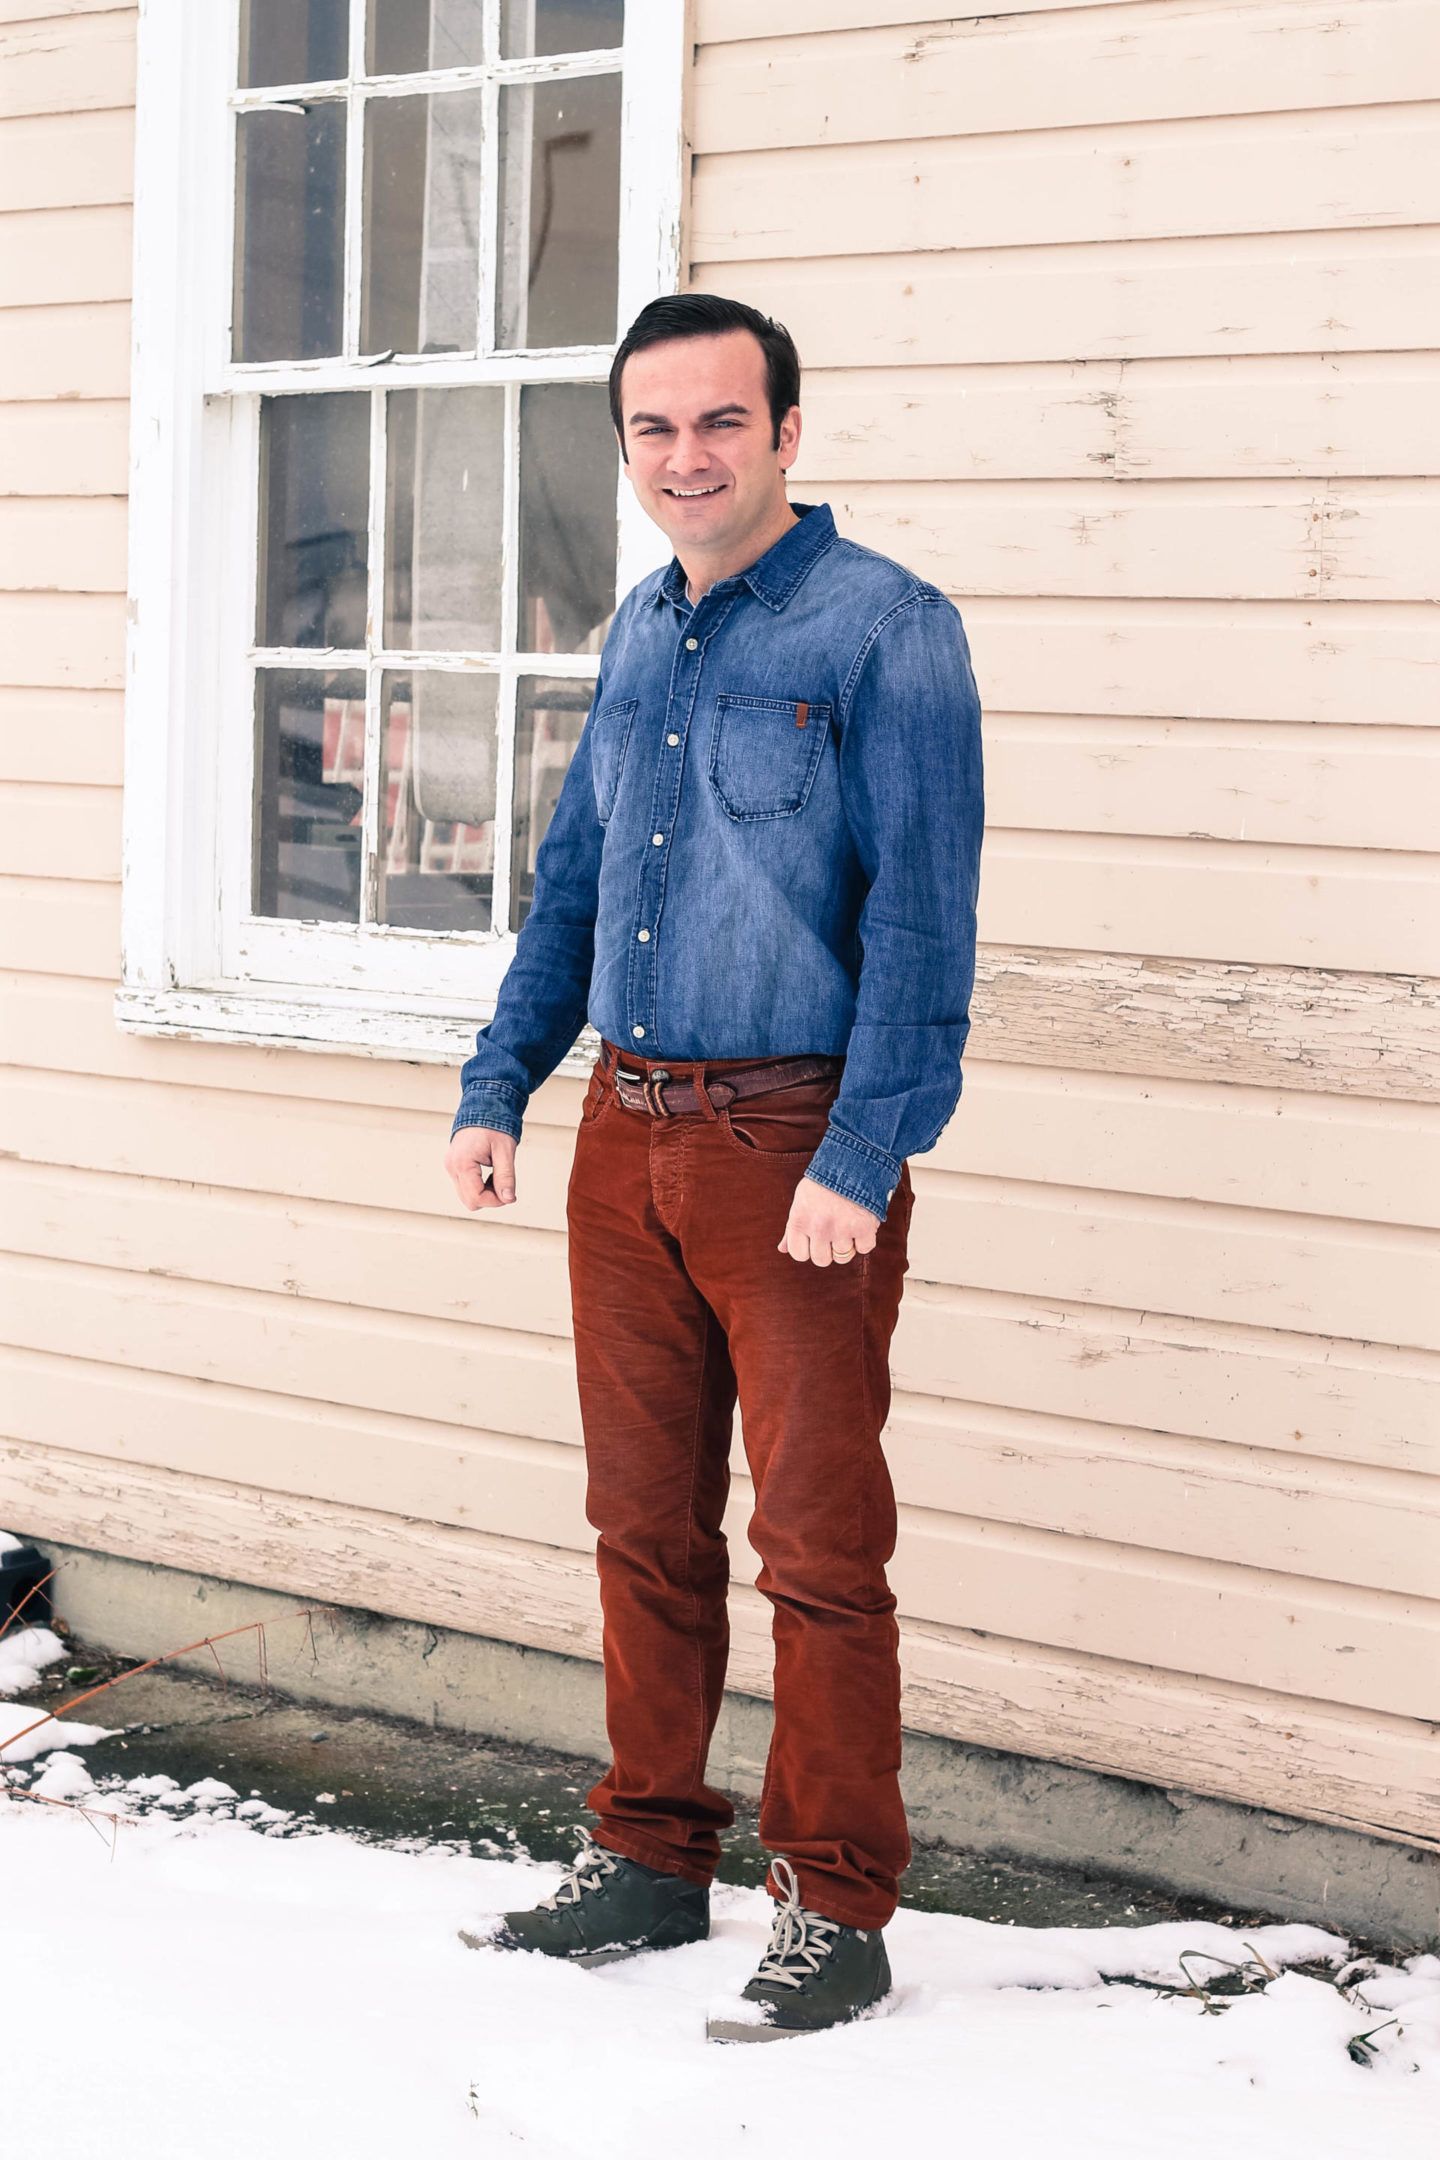 Dress Your Man In Stitch's Jeans